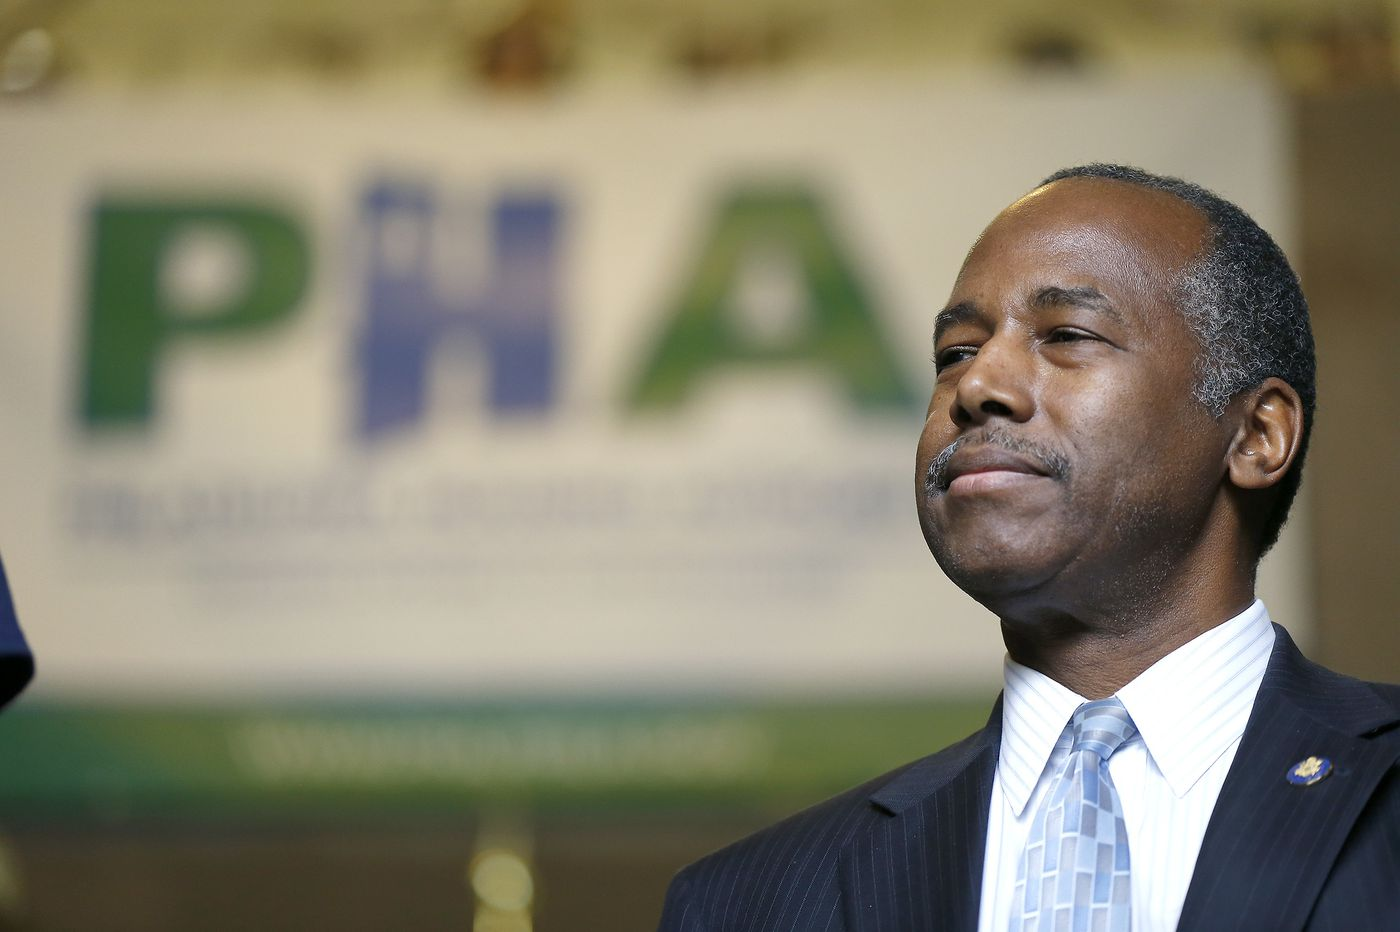 Detroit school board seeks to dishonor Ben Carson, one of city's greatest role models   Dom Giordano